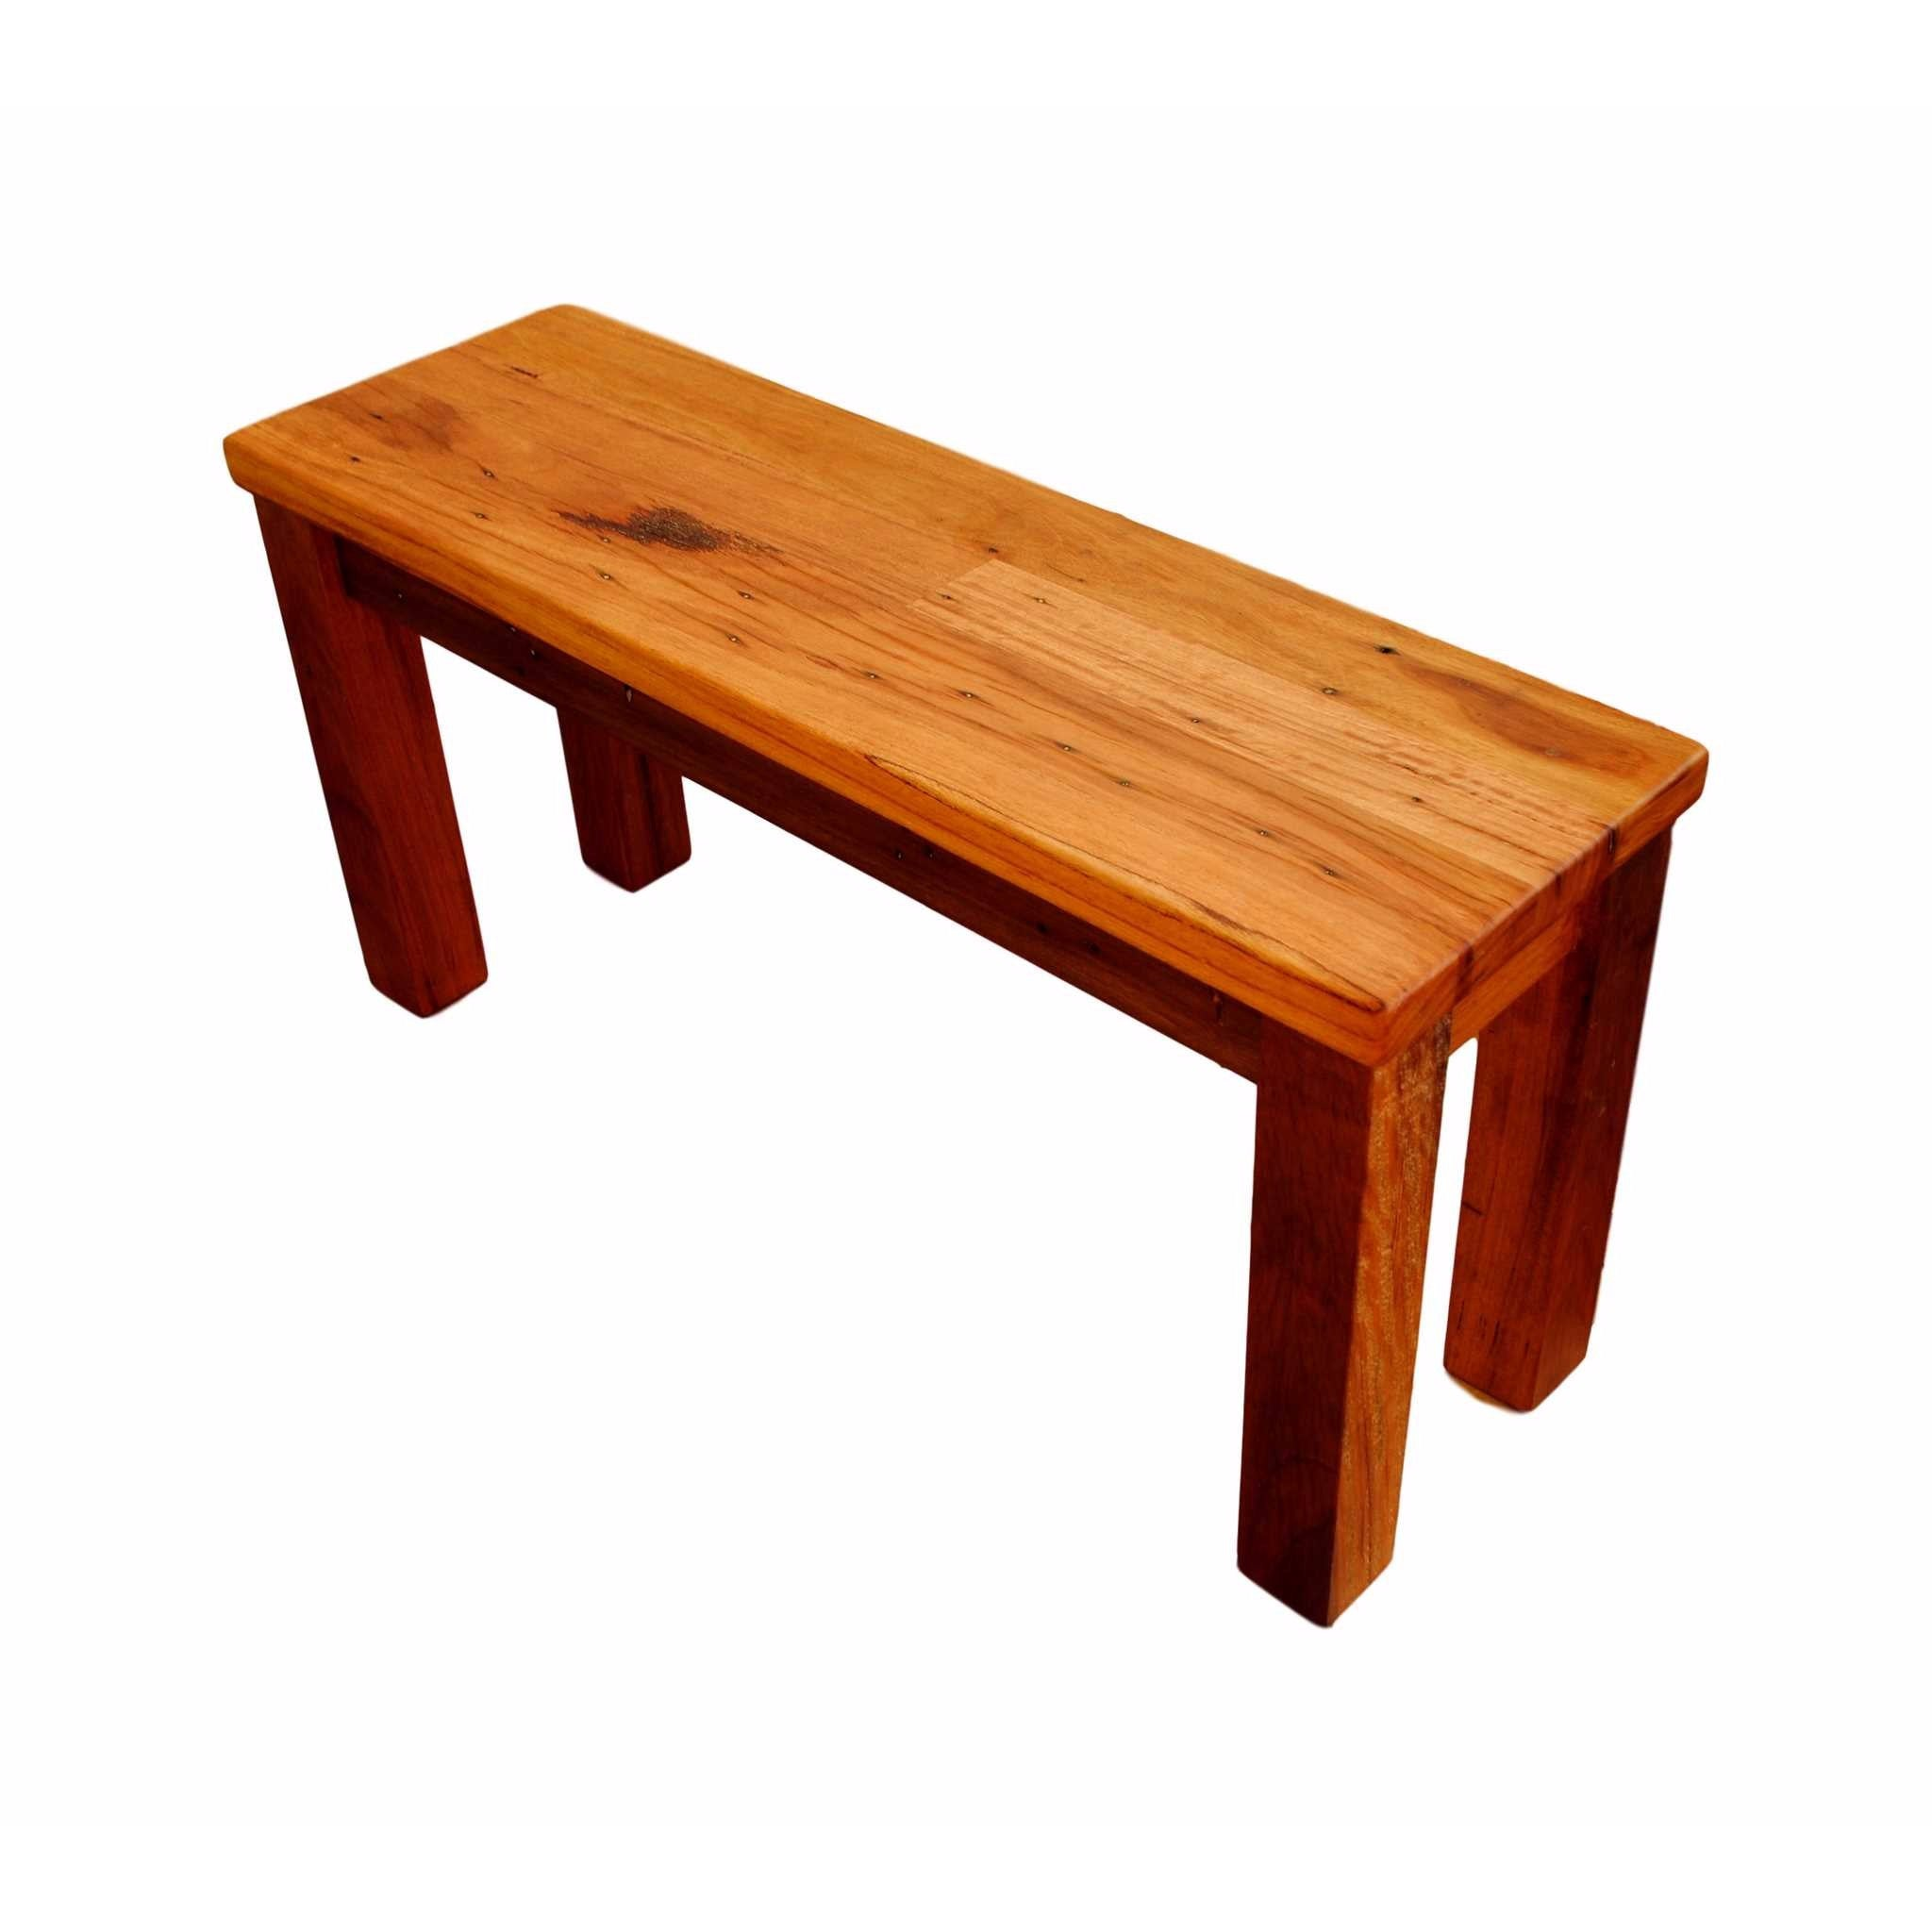 Indoor Bench Seat Illusive Wood Designs Byron Melbourne Brisbane N